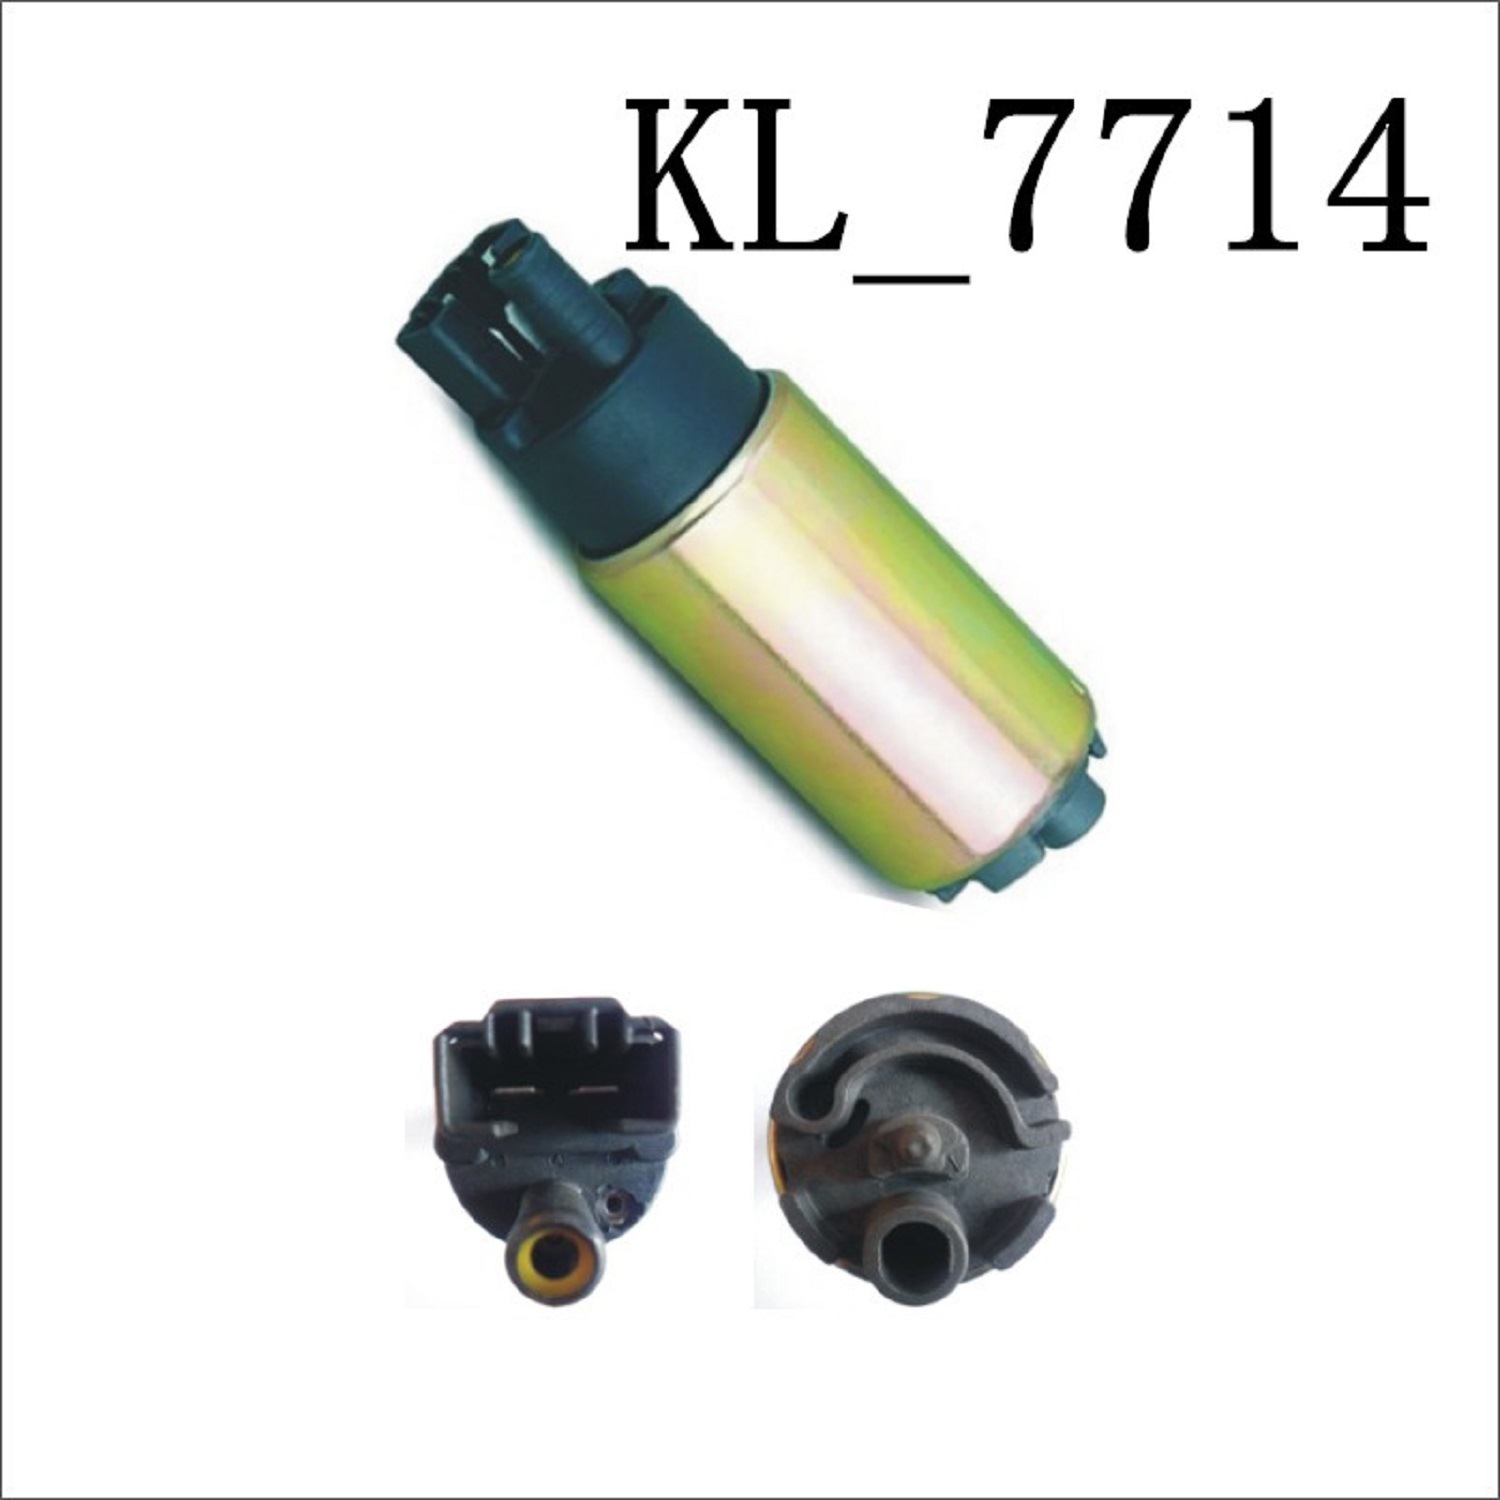 Auto Parts Electric Fuel Pump for Toyota/Honda/Nissan/Suzuki/Buick (0580453618) with Kl-7714